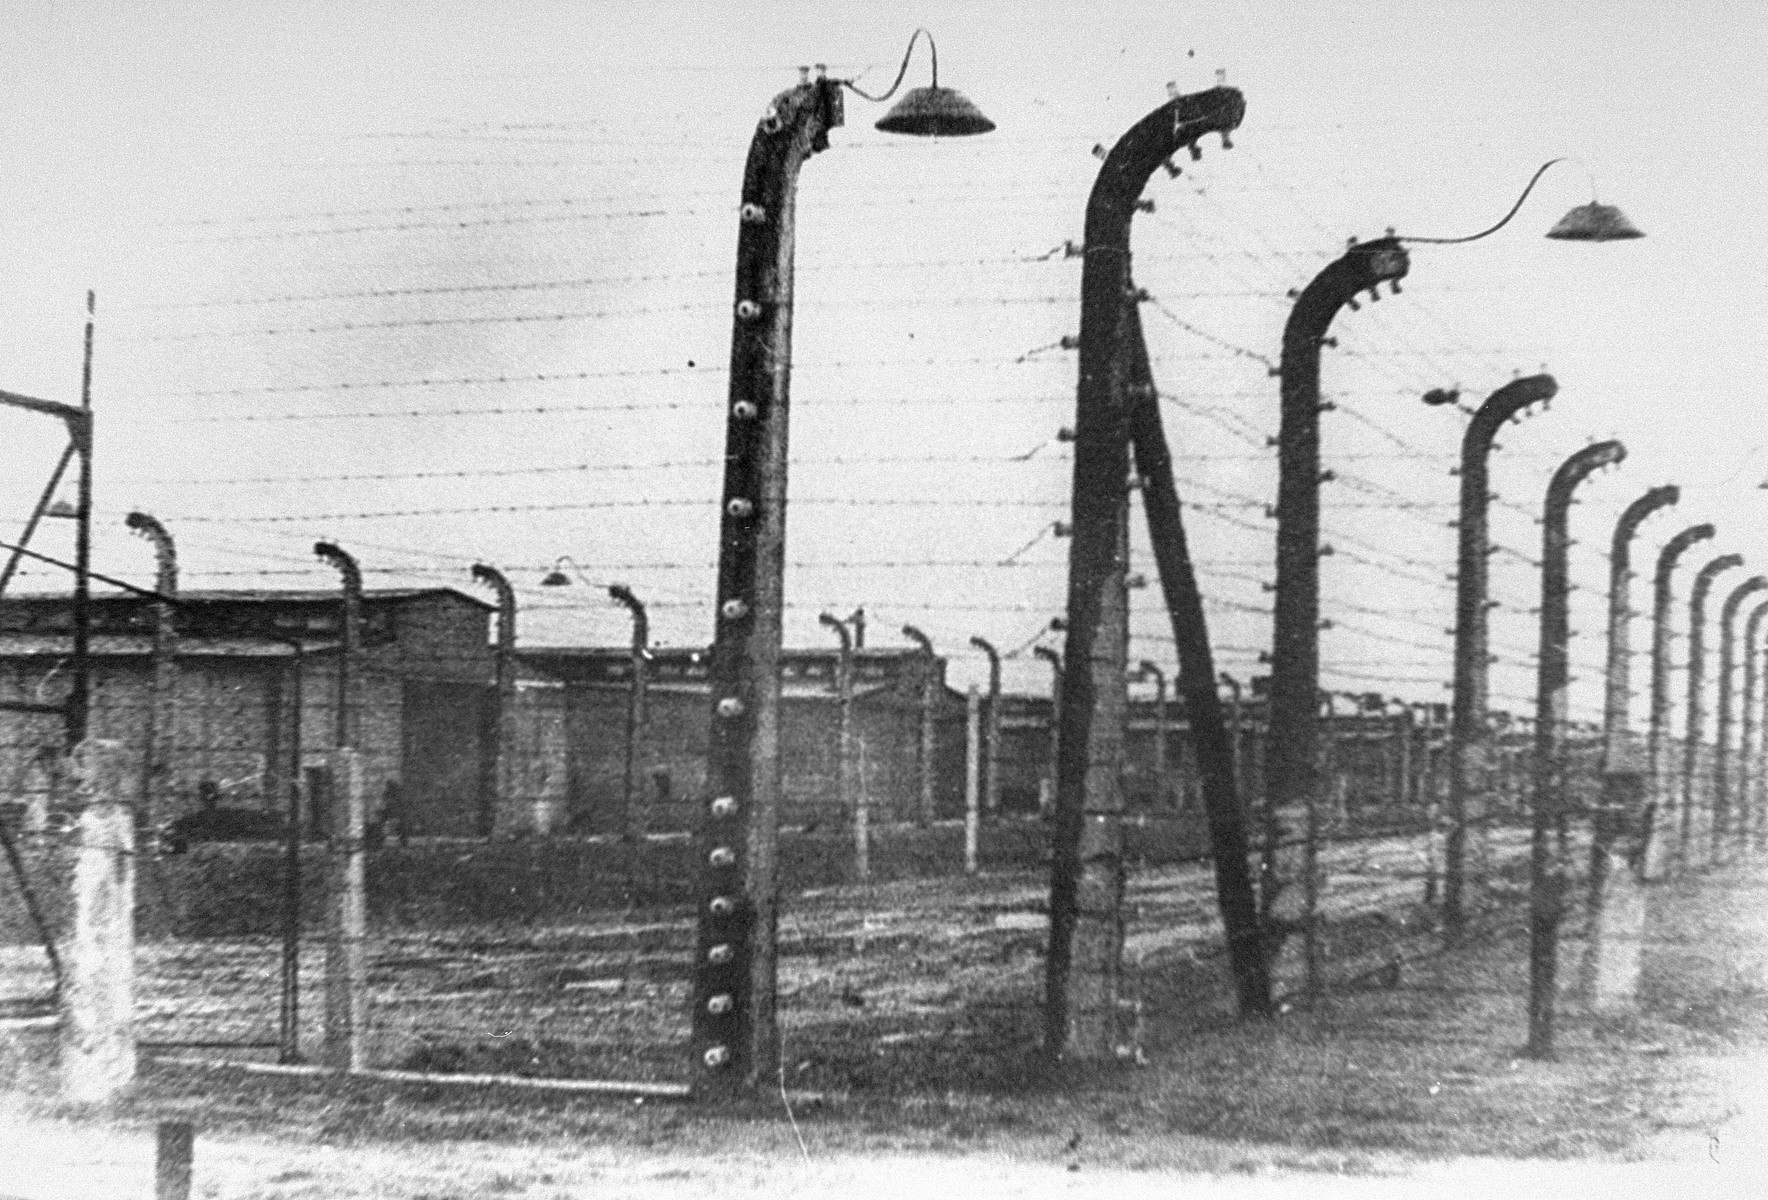 A view of the Auschwitz concentration camp after liberation.